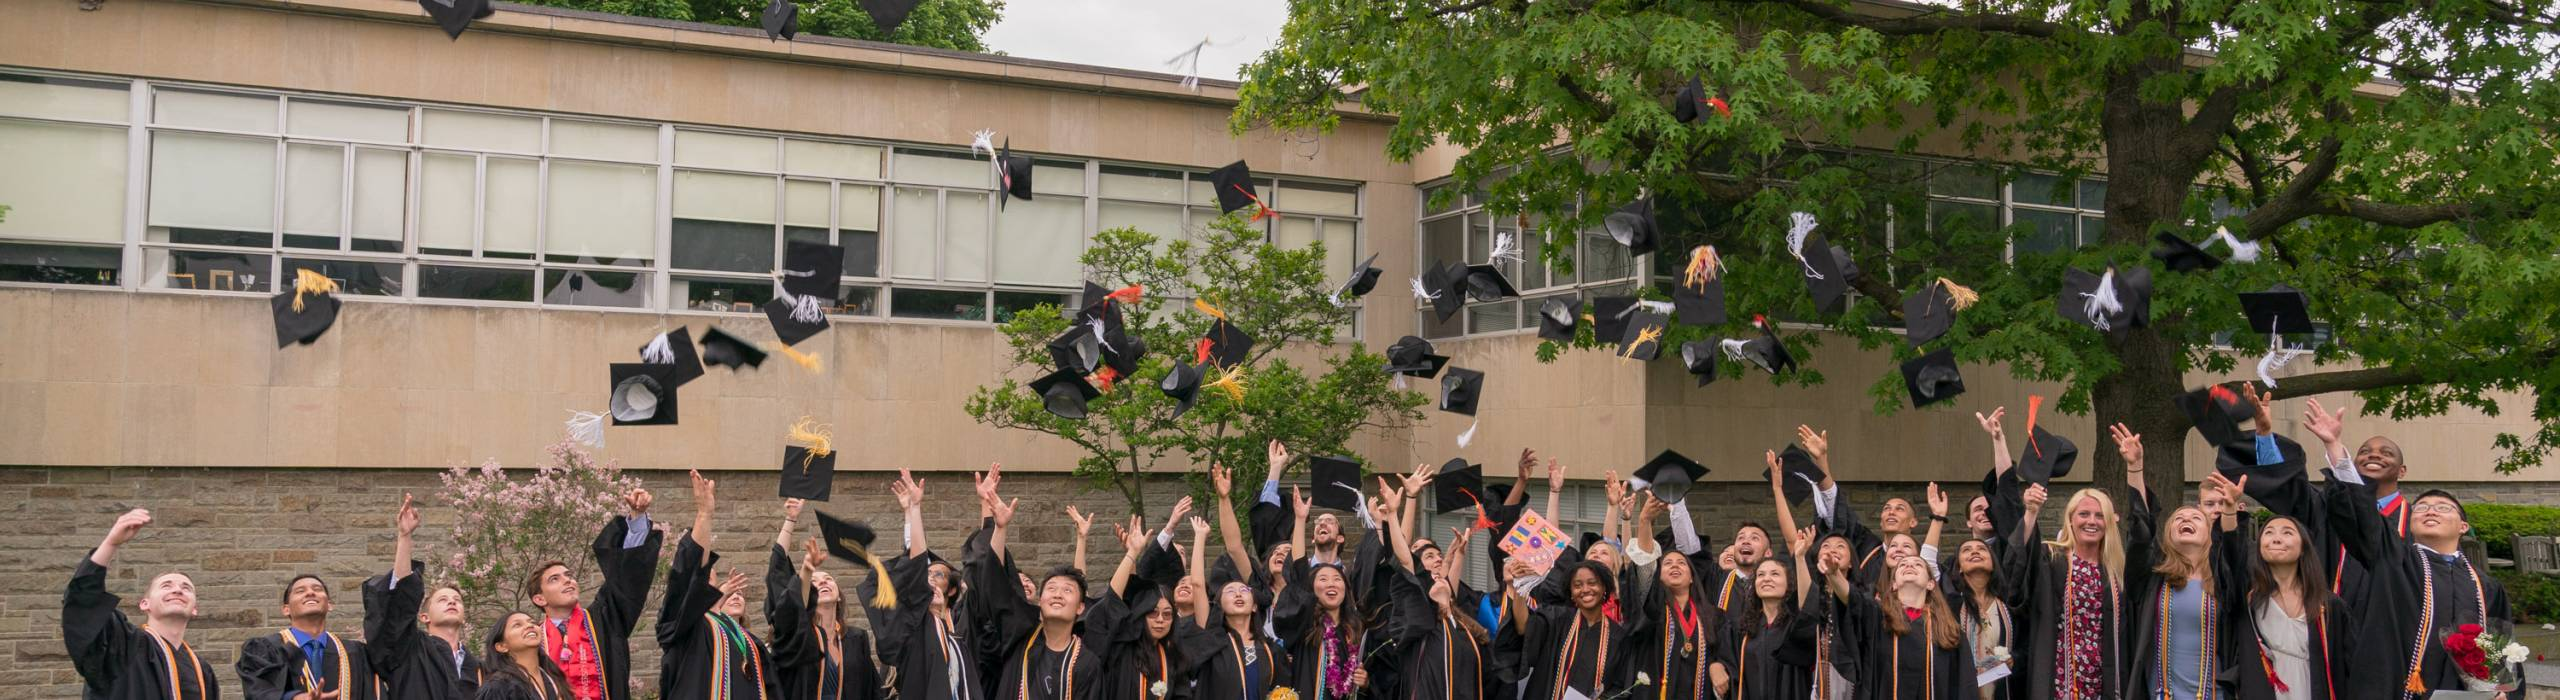 Info Sci's Class of 2018 graduates toss their caps during Commencement ceremonies on Saturday, May 26, 2018, on the Cornell campus in Ithaca.